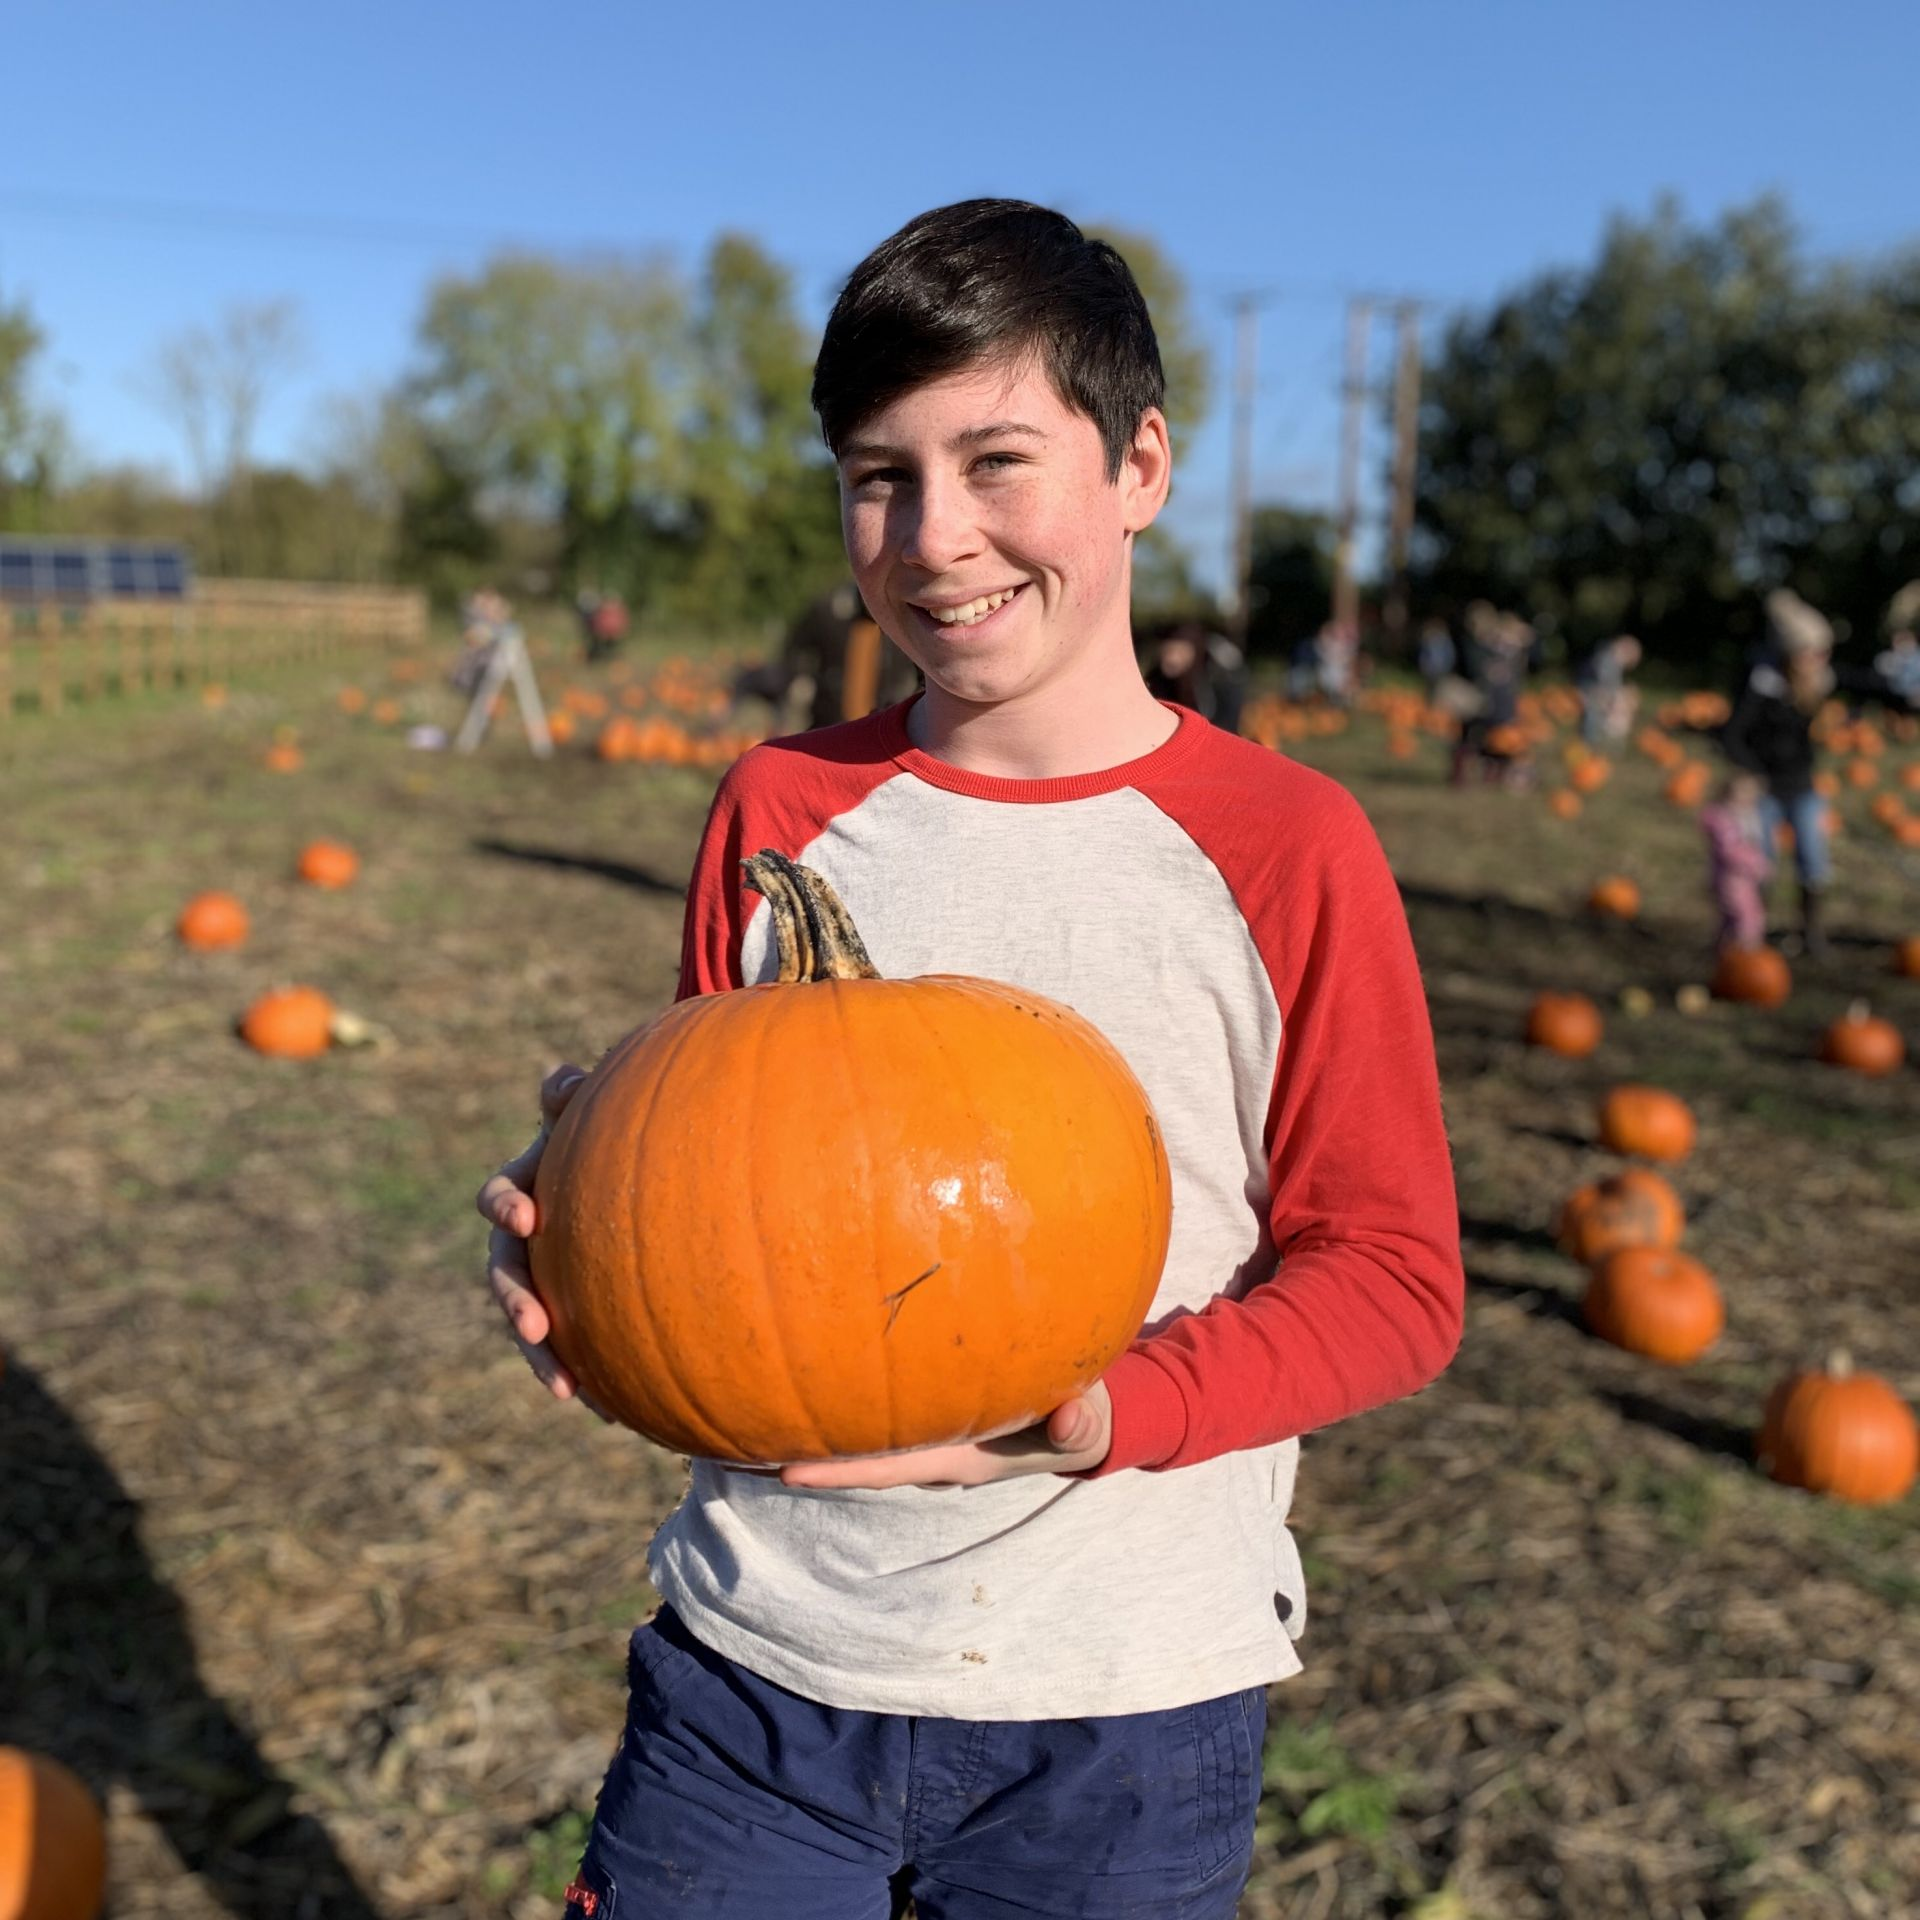 Boy smiling and holding a pumpkin